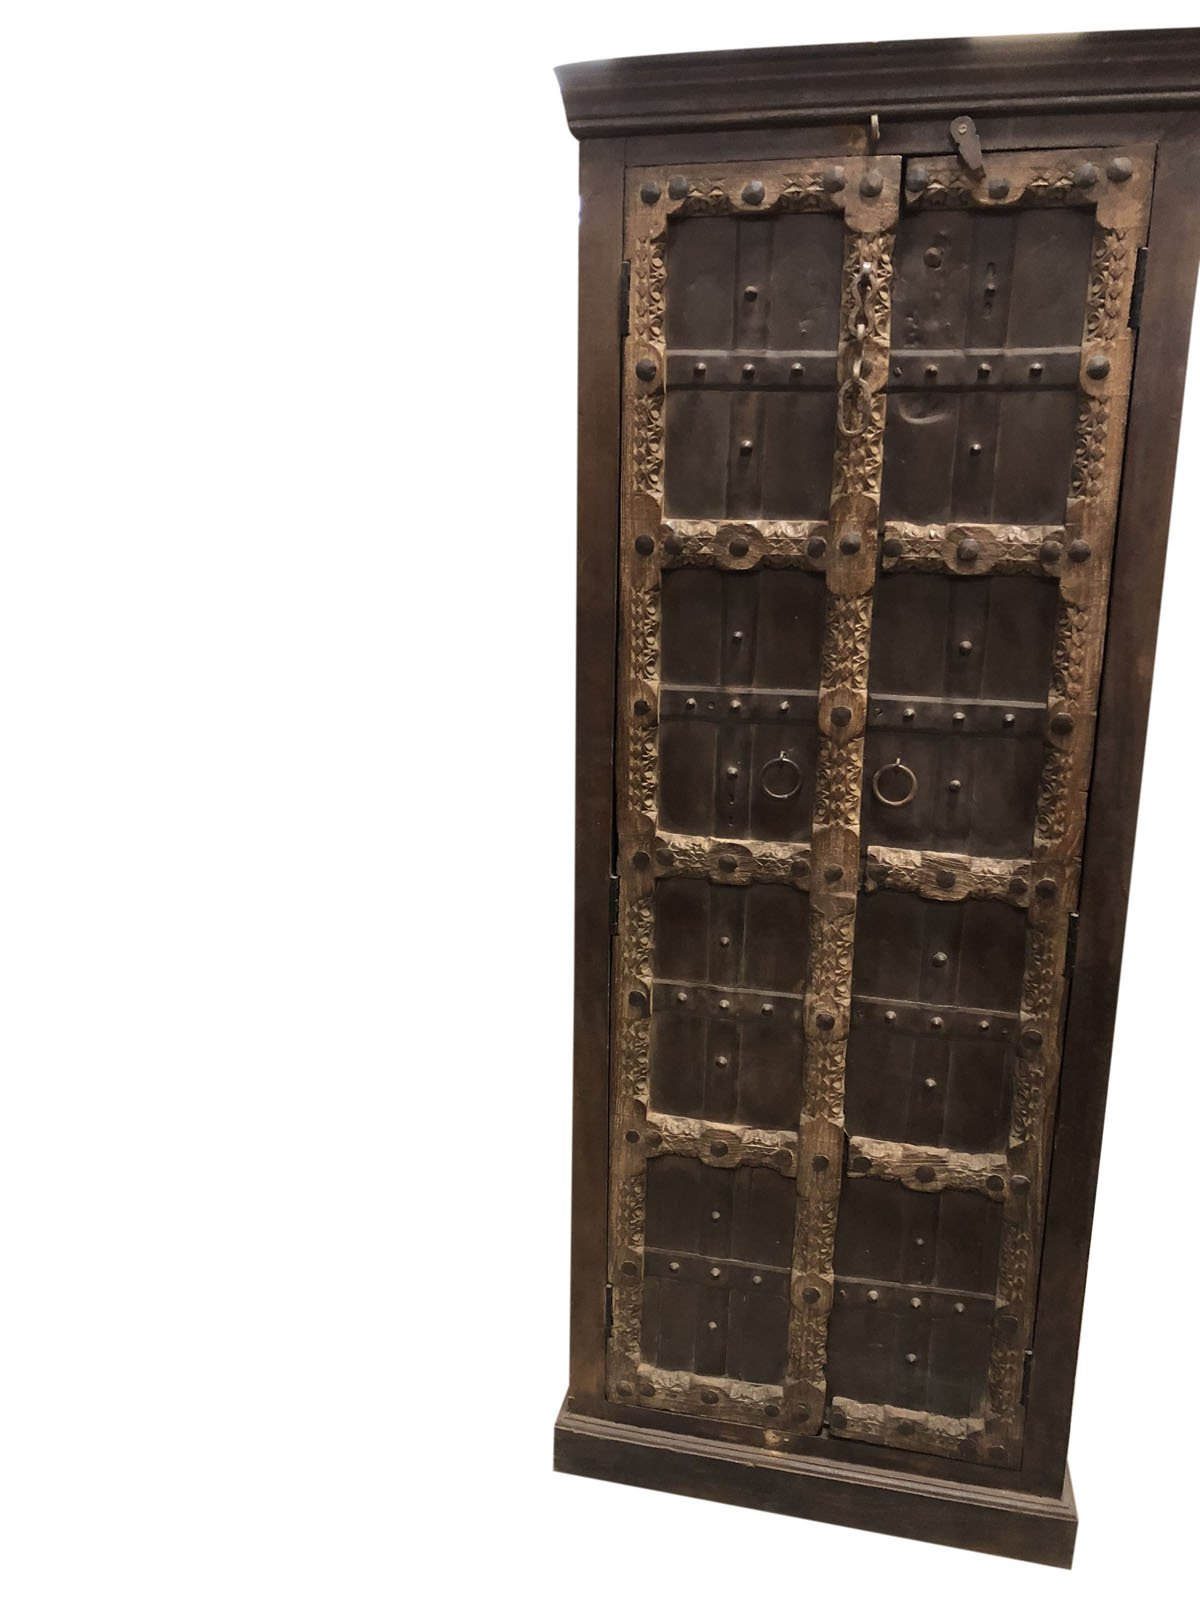 Mogul Interior Antique Indian Armoire Hand Carved Iron Nailed Brown Storage Wardrobe Cabinet Conscious Interiors Design by Mogul Interior (Image #2)